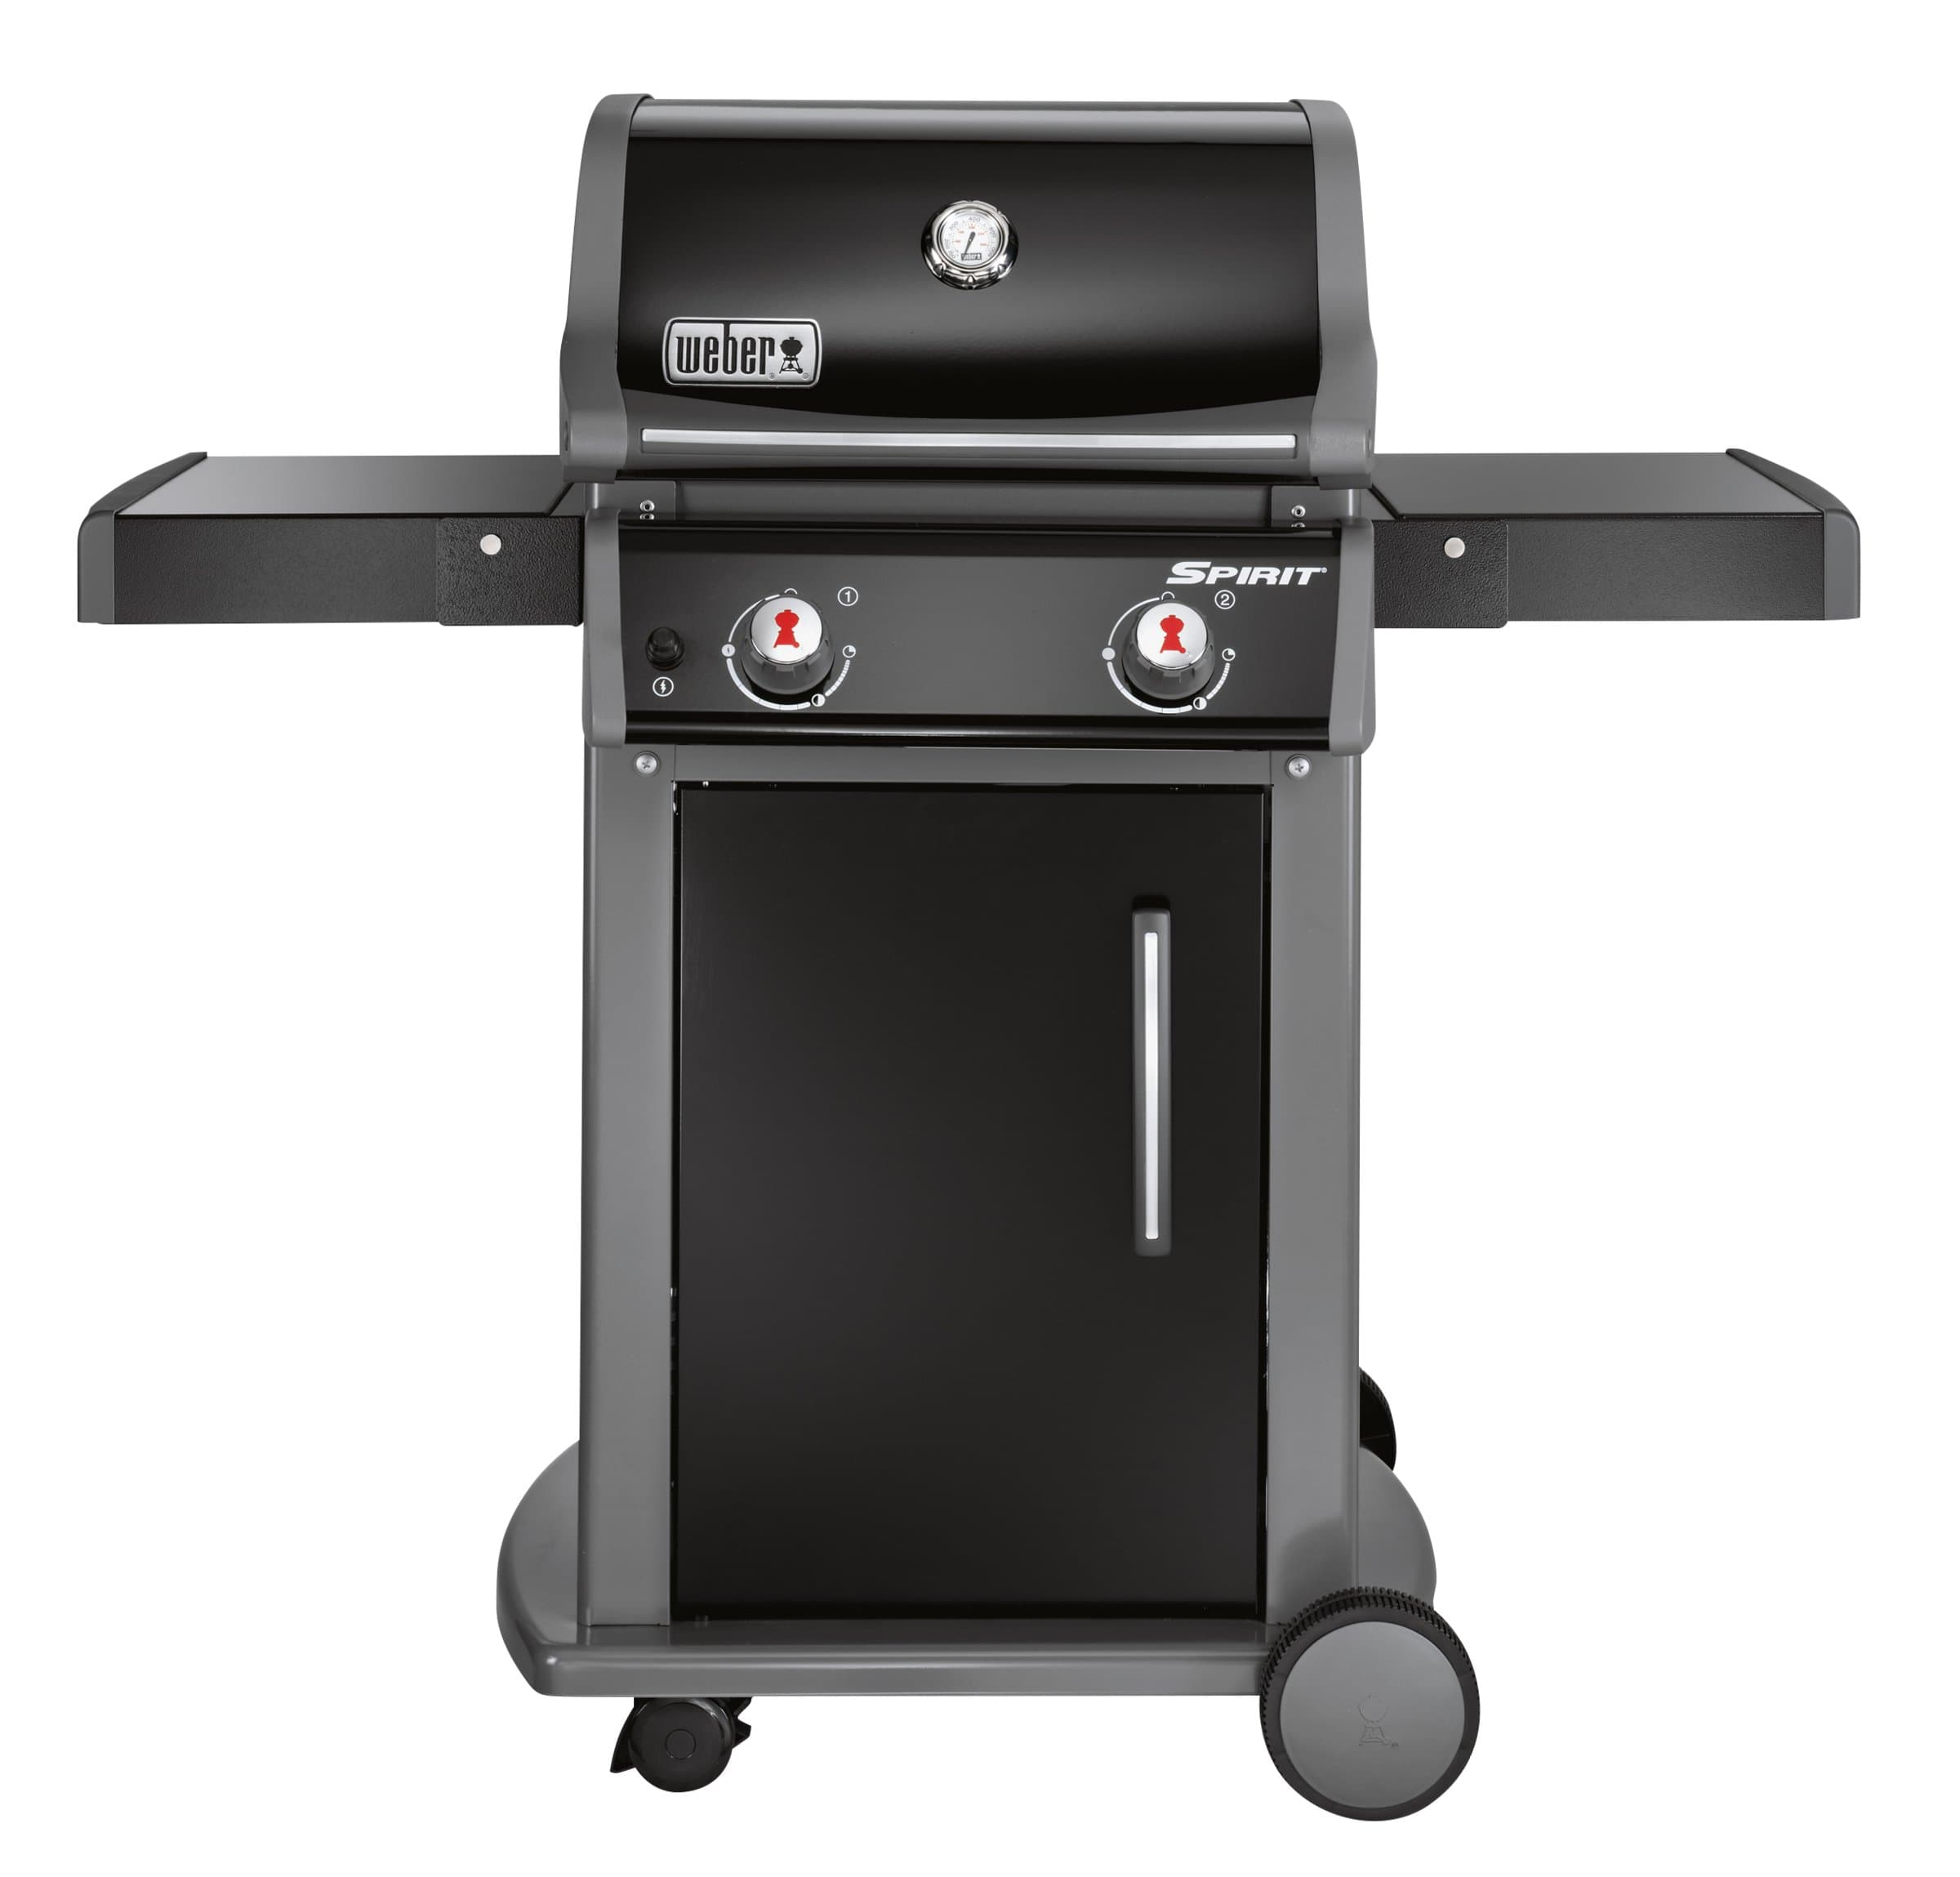 weber gasgrill spirit e 210 original migros. Black Bedroom Furniture Sets. Home Design Ideas